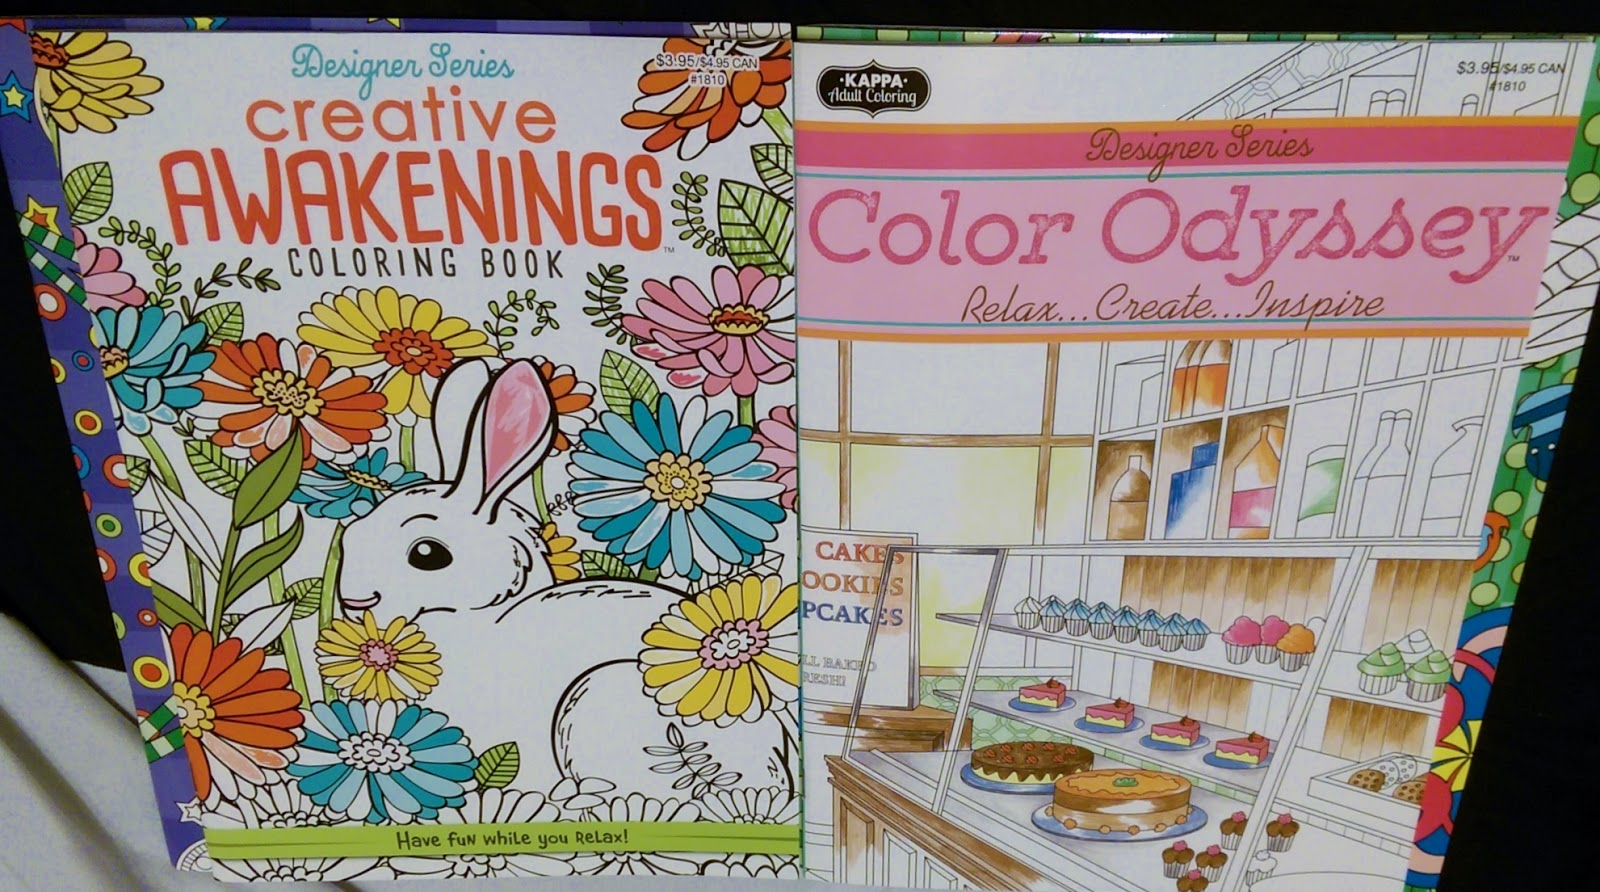 Creative Awakenings Animals Color Odyssey Detailed Home Designs Wallpaper Patterns Objects